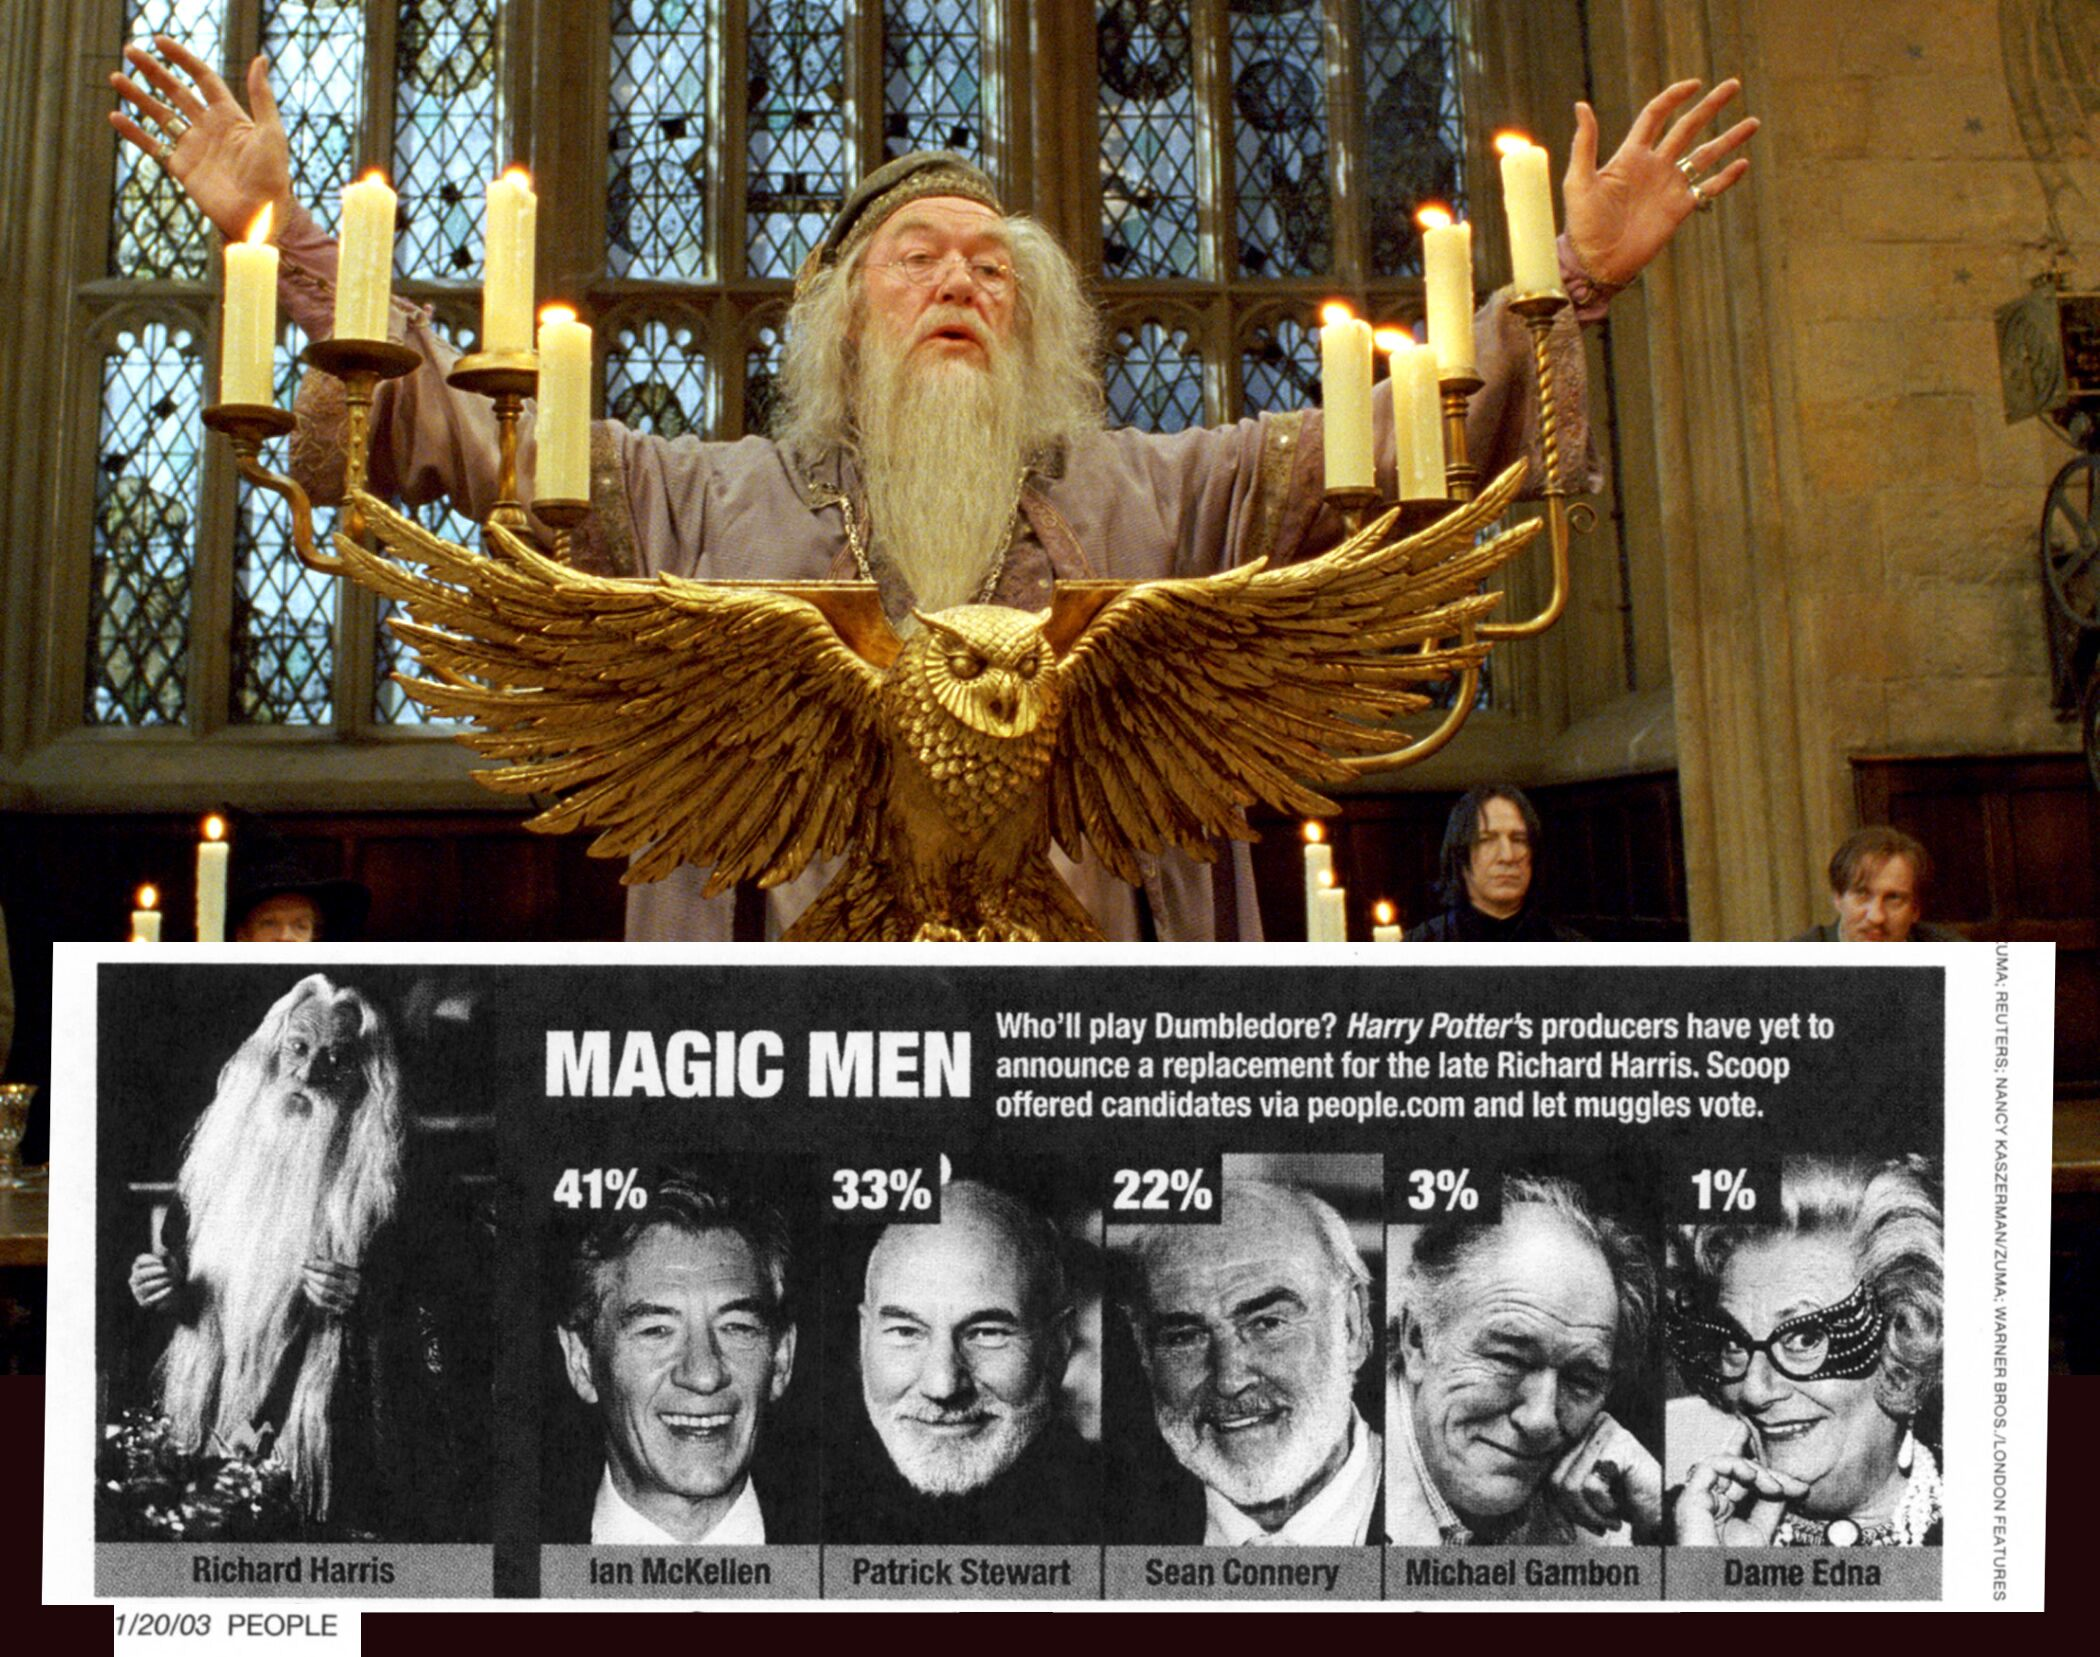 Played by actors Richard Harris and Michael Gambon in the Harry Potter series